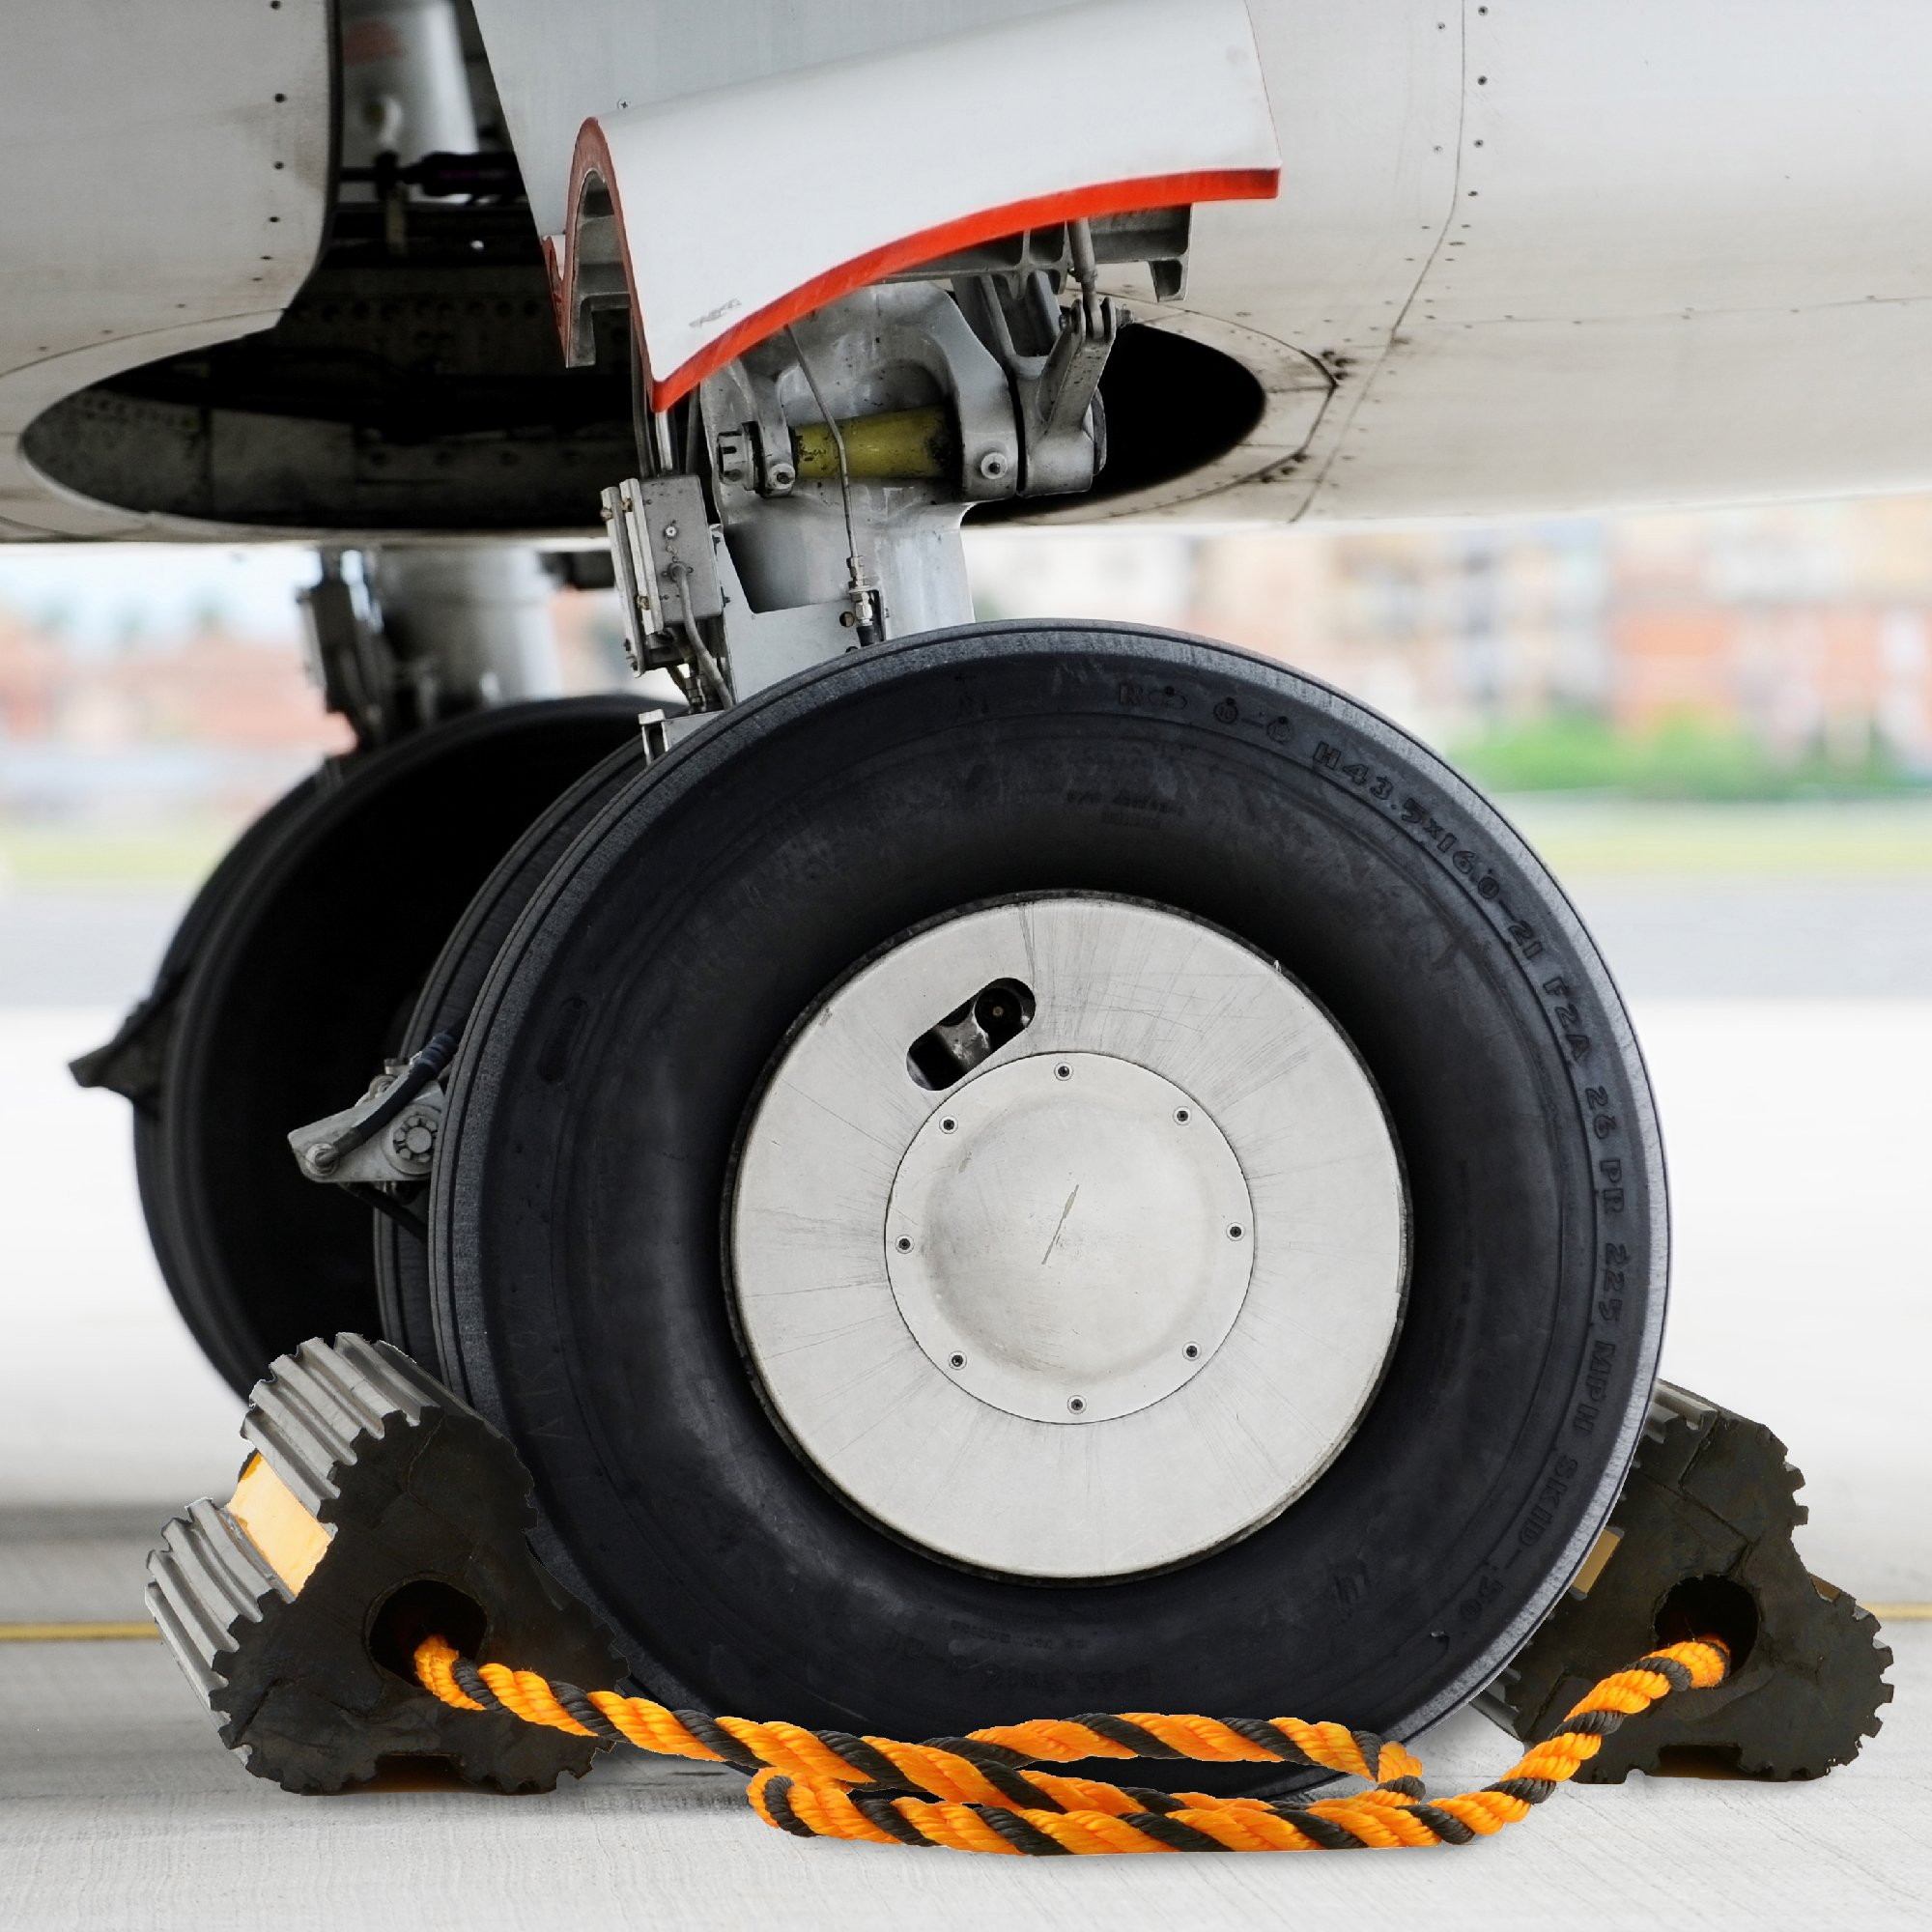 Approved for Automotive AFA Aircraft Wheel Chocks All Weather Safety Reflected 29 Inch Tethered for Small Airplanes by Approved for Automotive (Image #5)